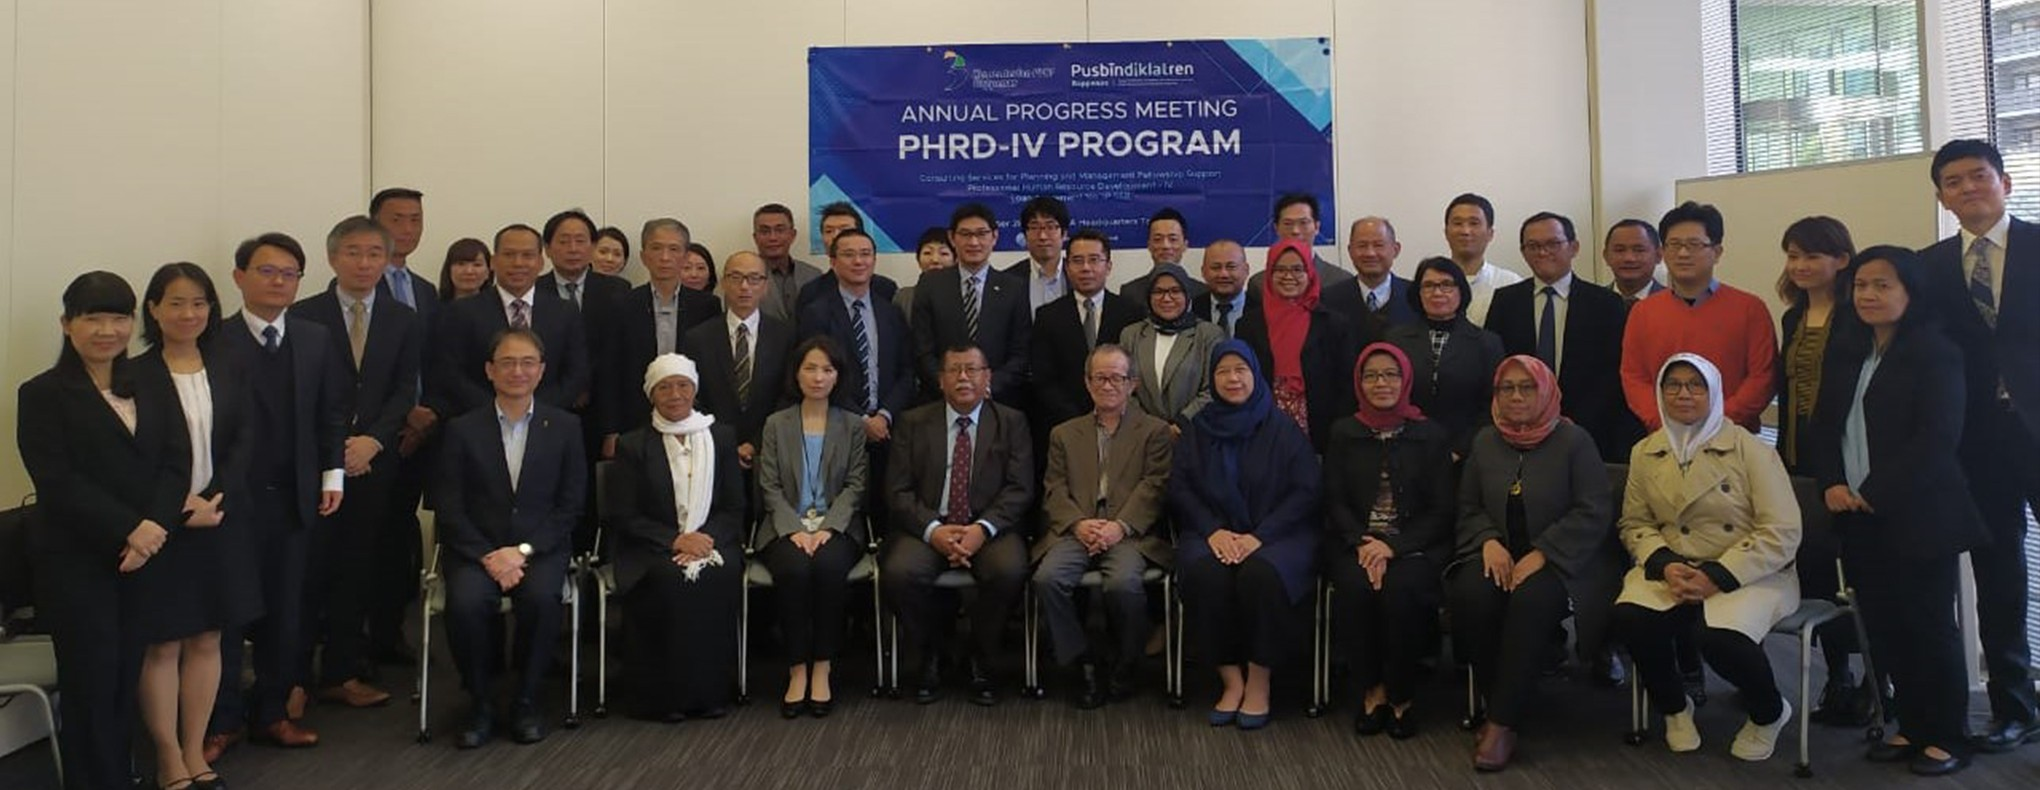 Annual Meeting PHRD IV 2019